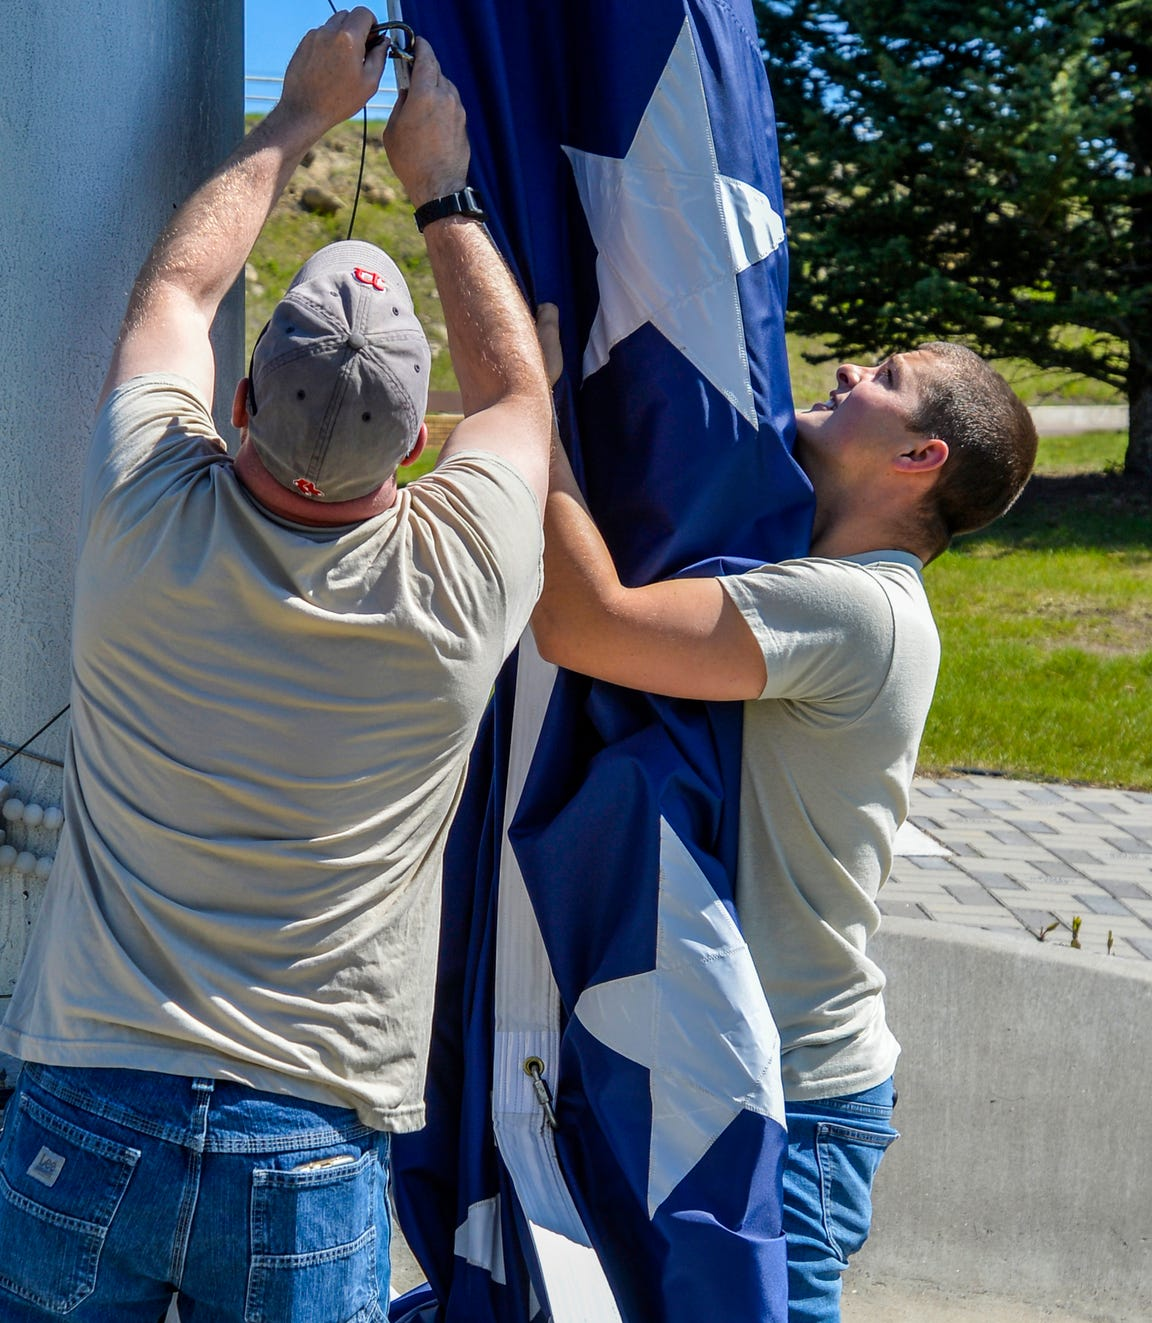 Master Sergeant Mark Snodgrass, left, and Tech Sergeant Kevyn Waite switch out the flag at Broadwater Overlook Park Tuesday, May 28, 2019. The flags are changed out on a regular basis for cleaning and repairs.